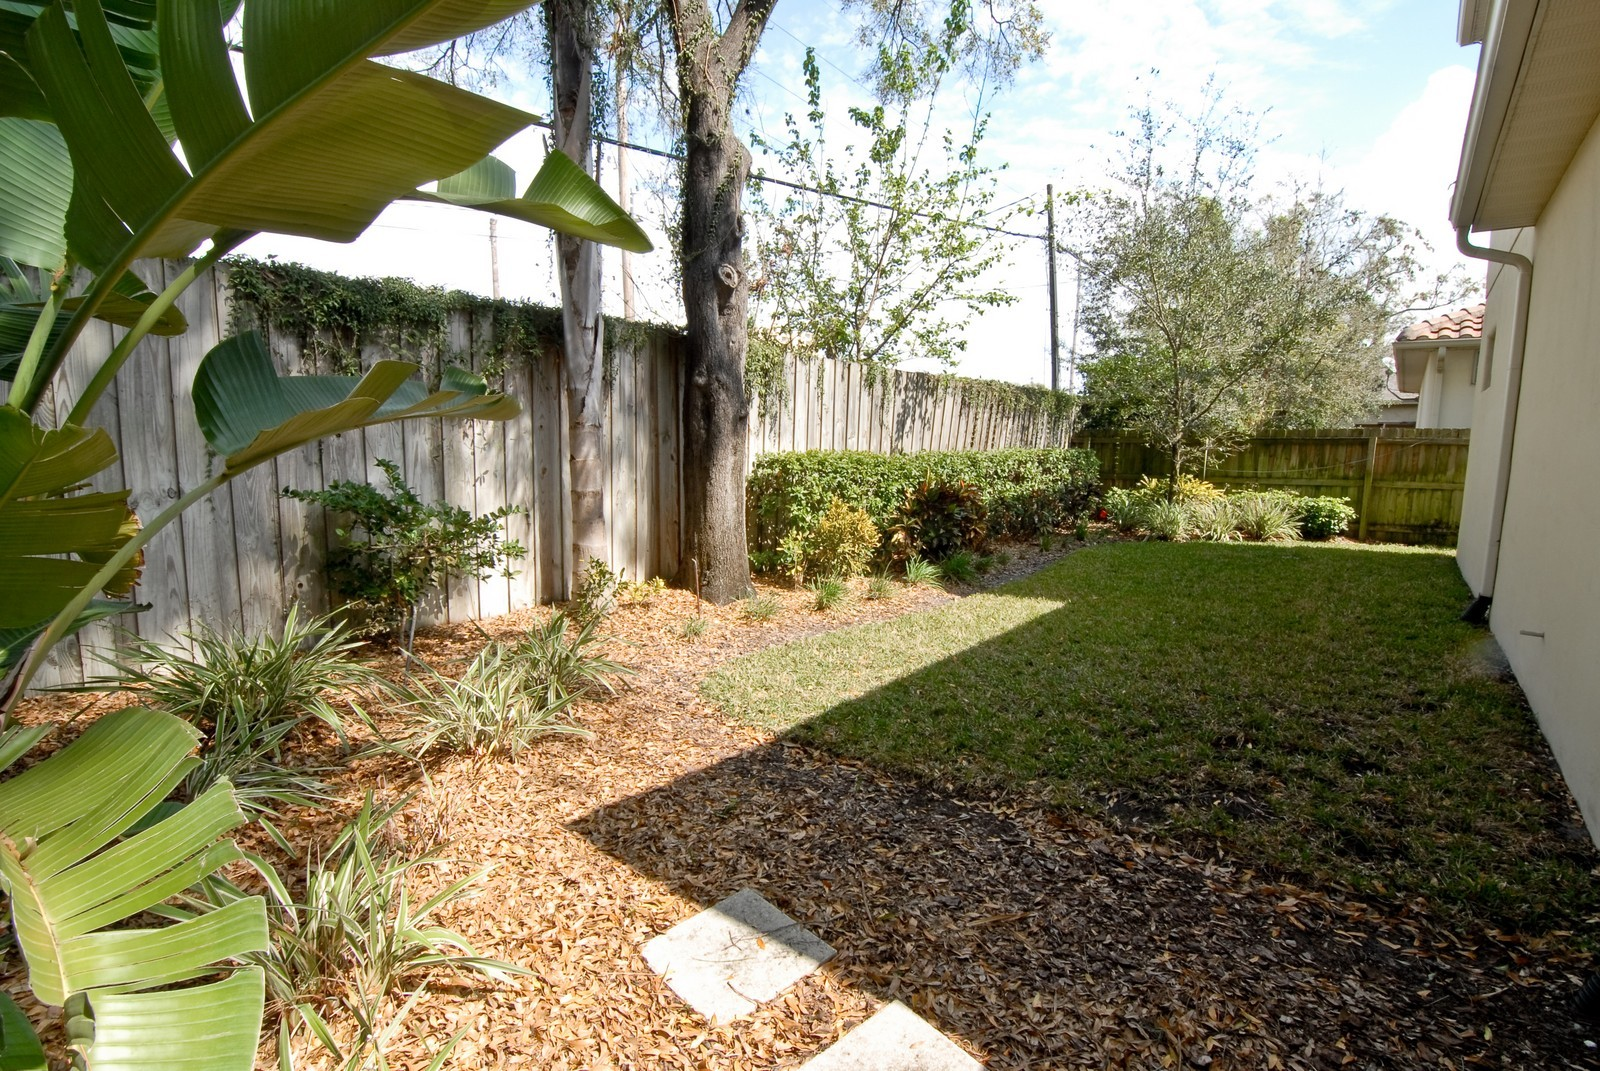 Real Estate Photography - 3107 Fountain Blvd, Tampa, FL, 33609 - Back Yard